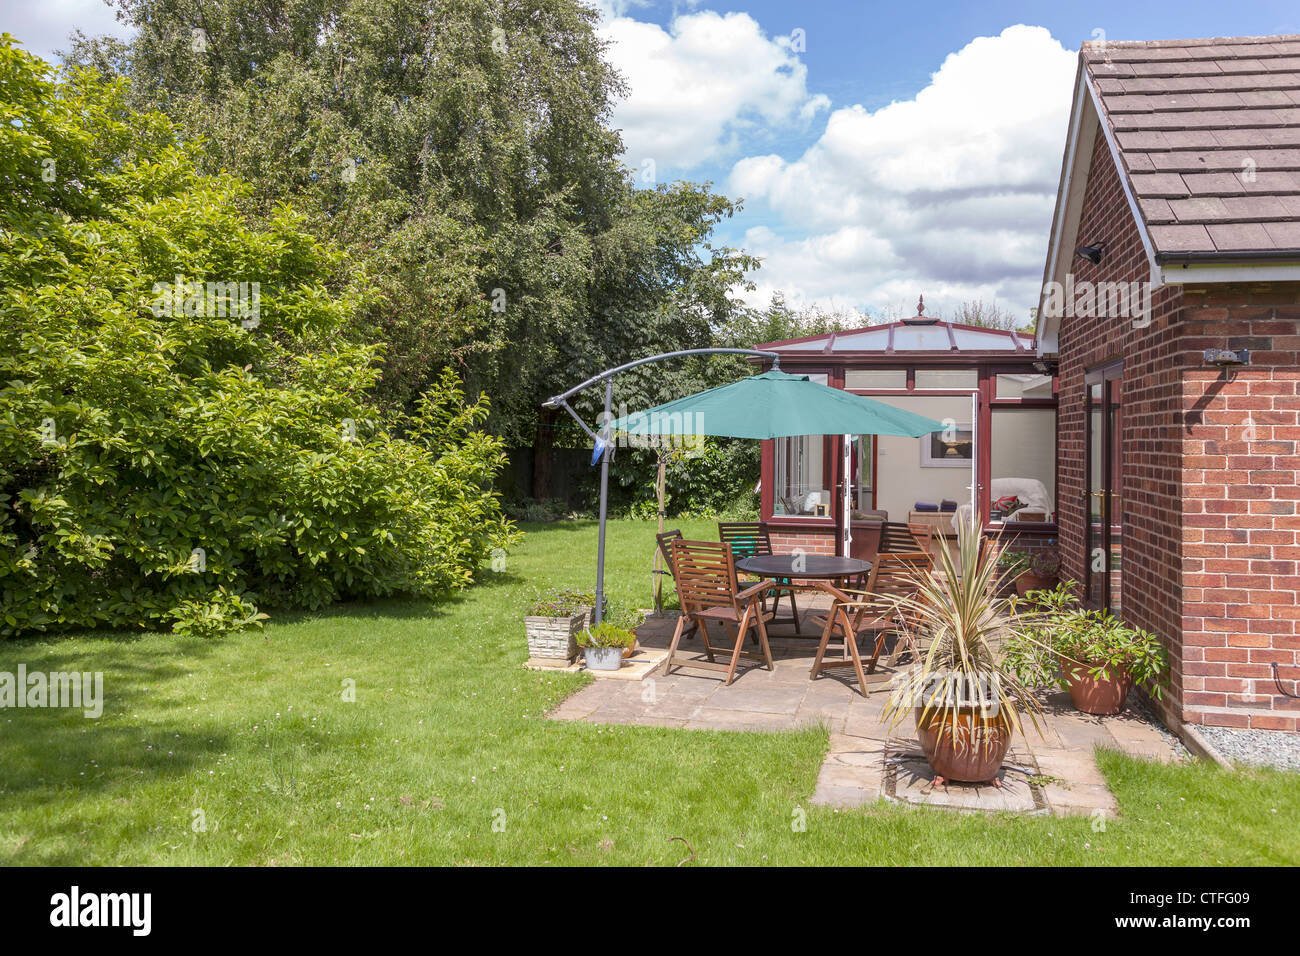 Middle class English suburban garden with patio and conservatory. - Stock Image